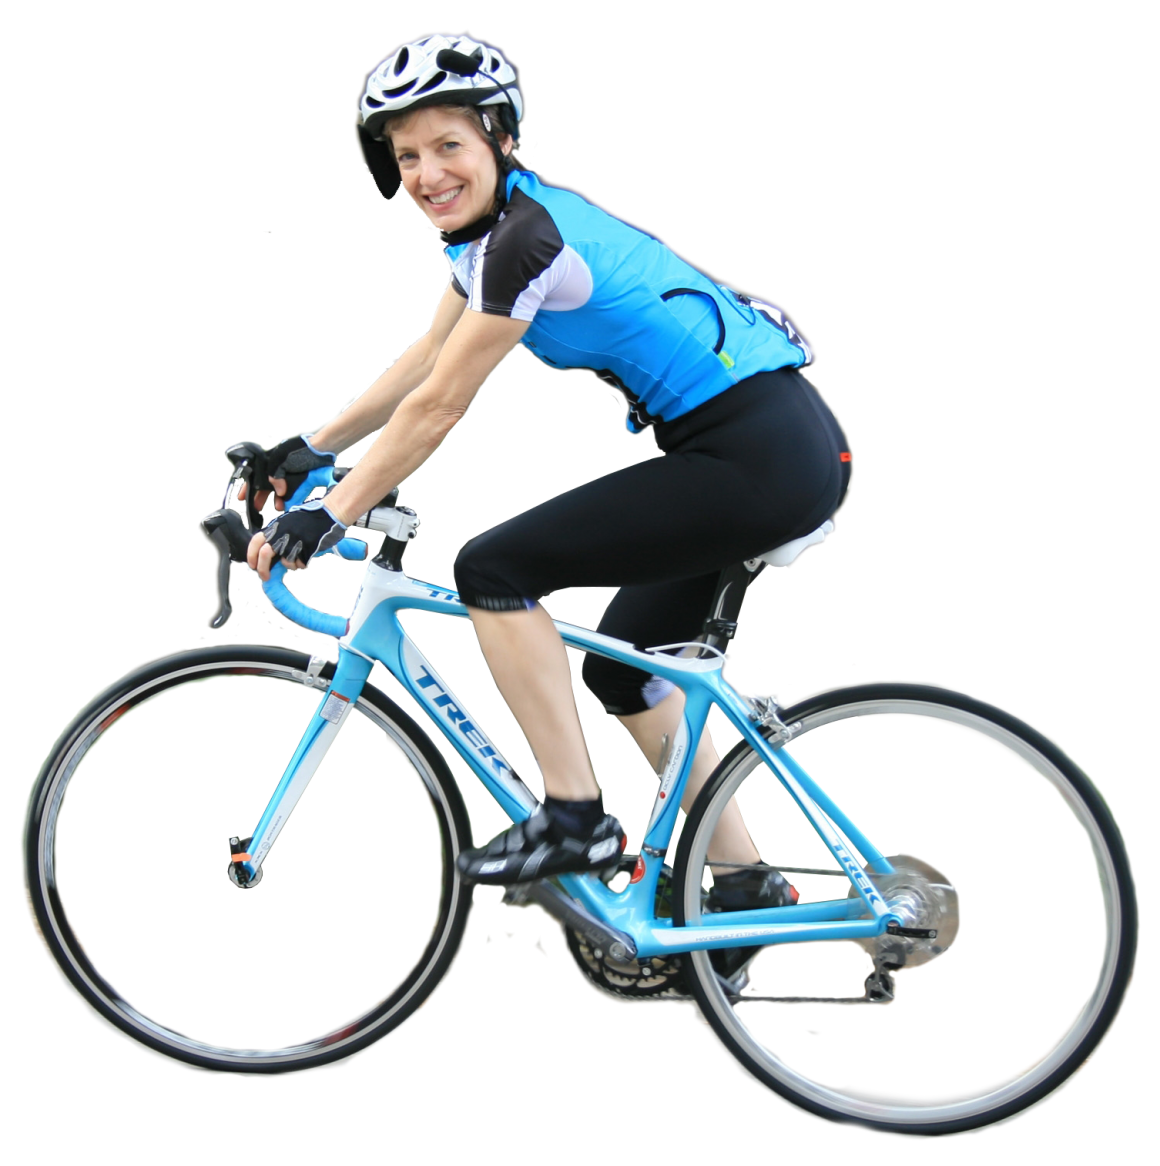 Ride a bike png. Cycle clipart cycling sport